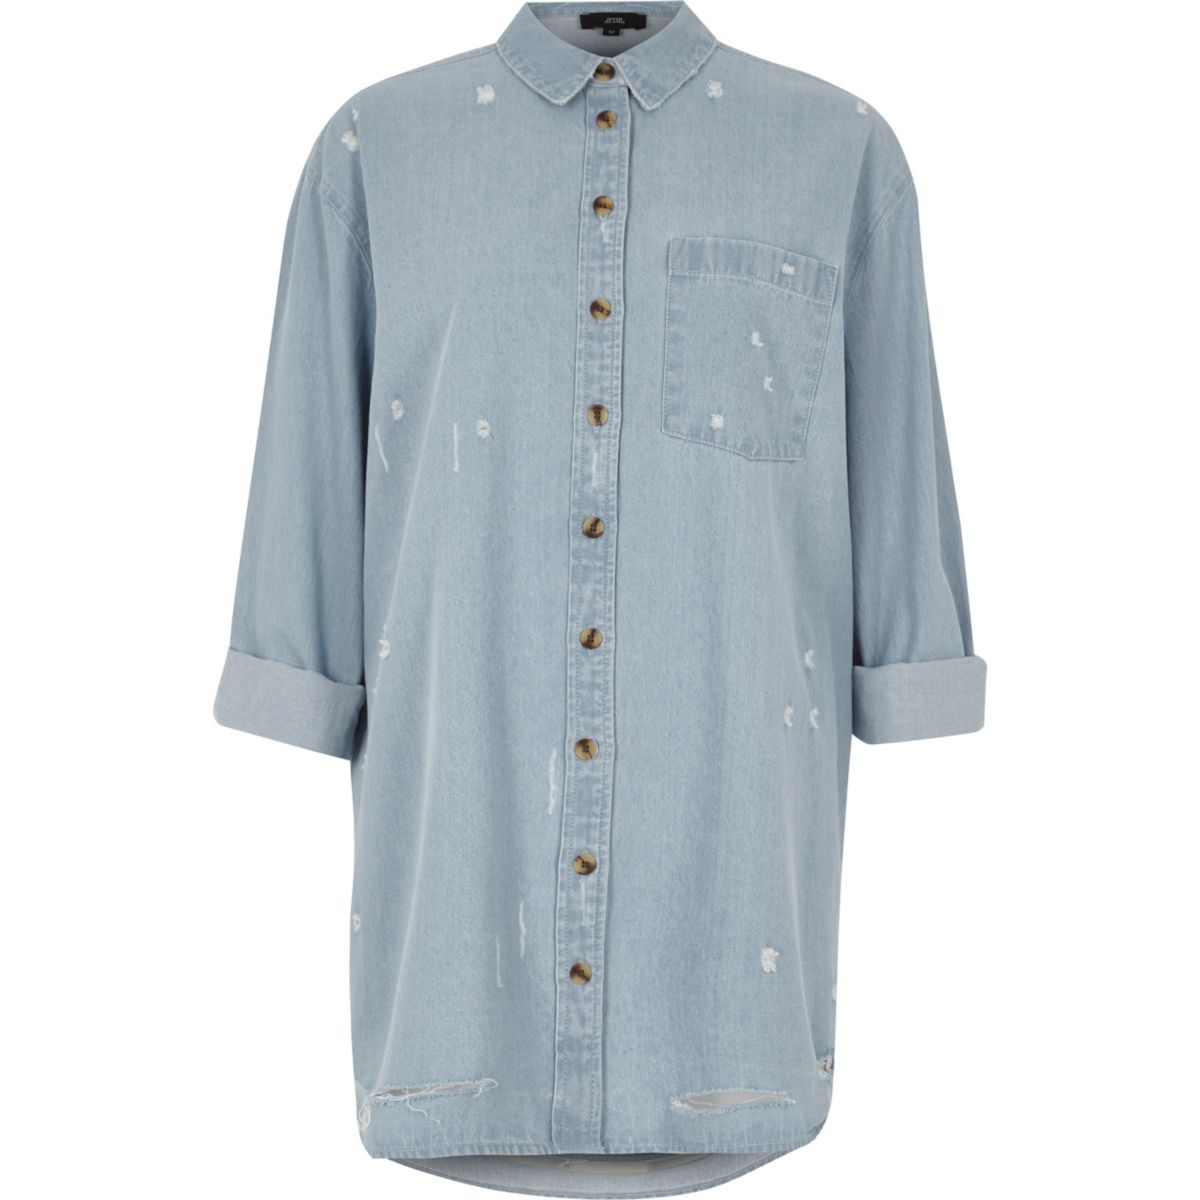 Light blue oversized distressed denim shirt